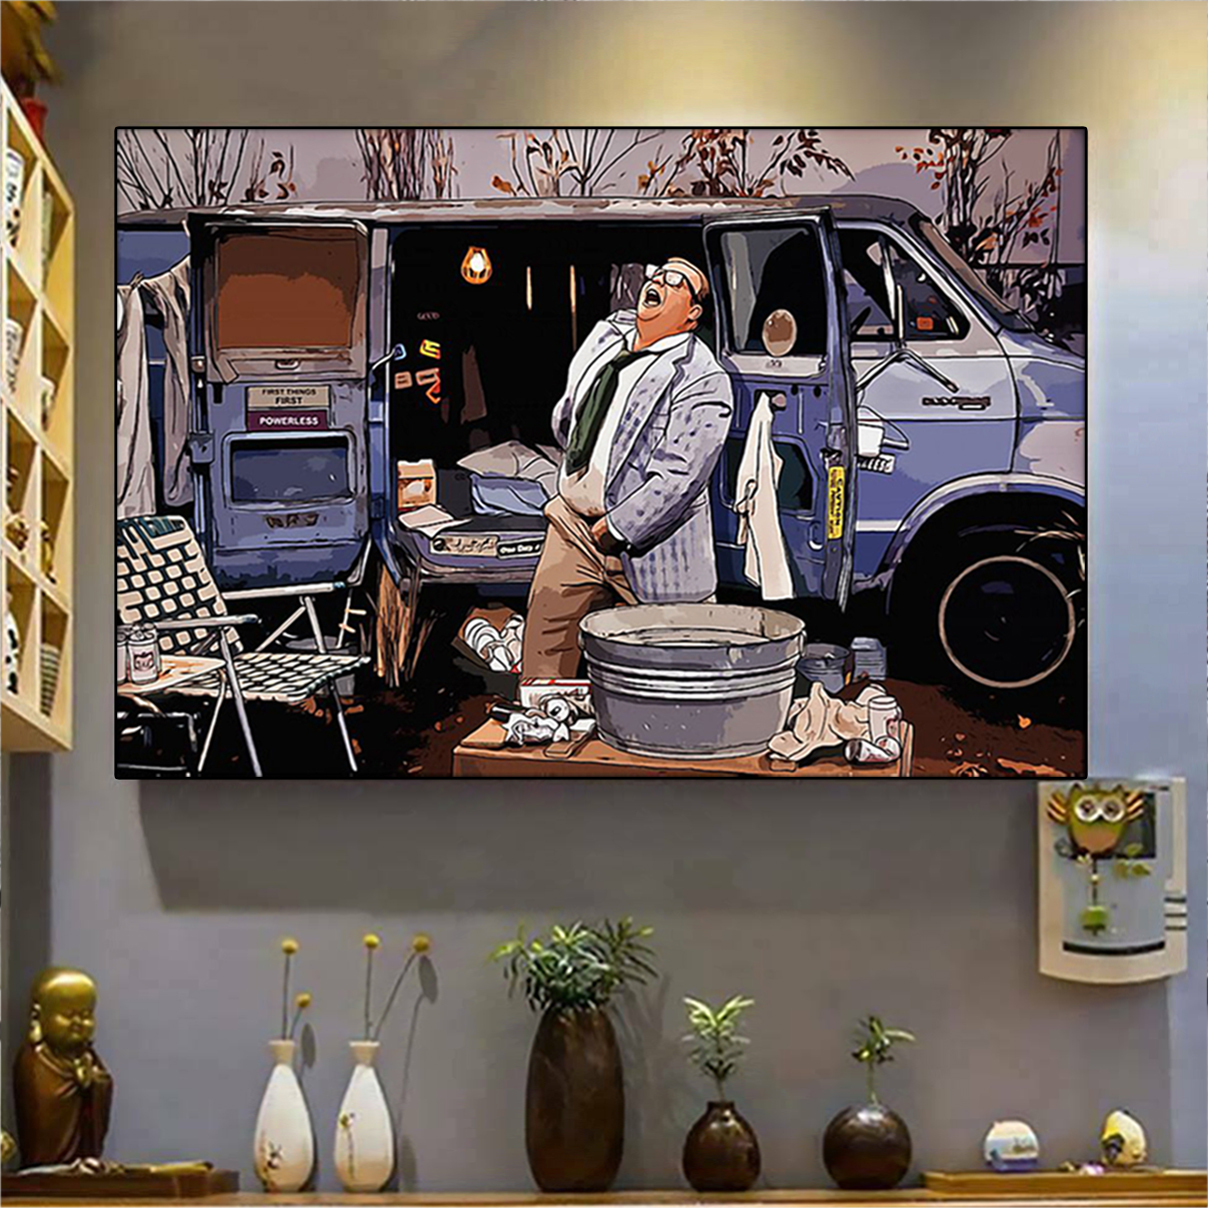 Living in a van down by the river poster A1